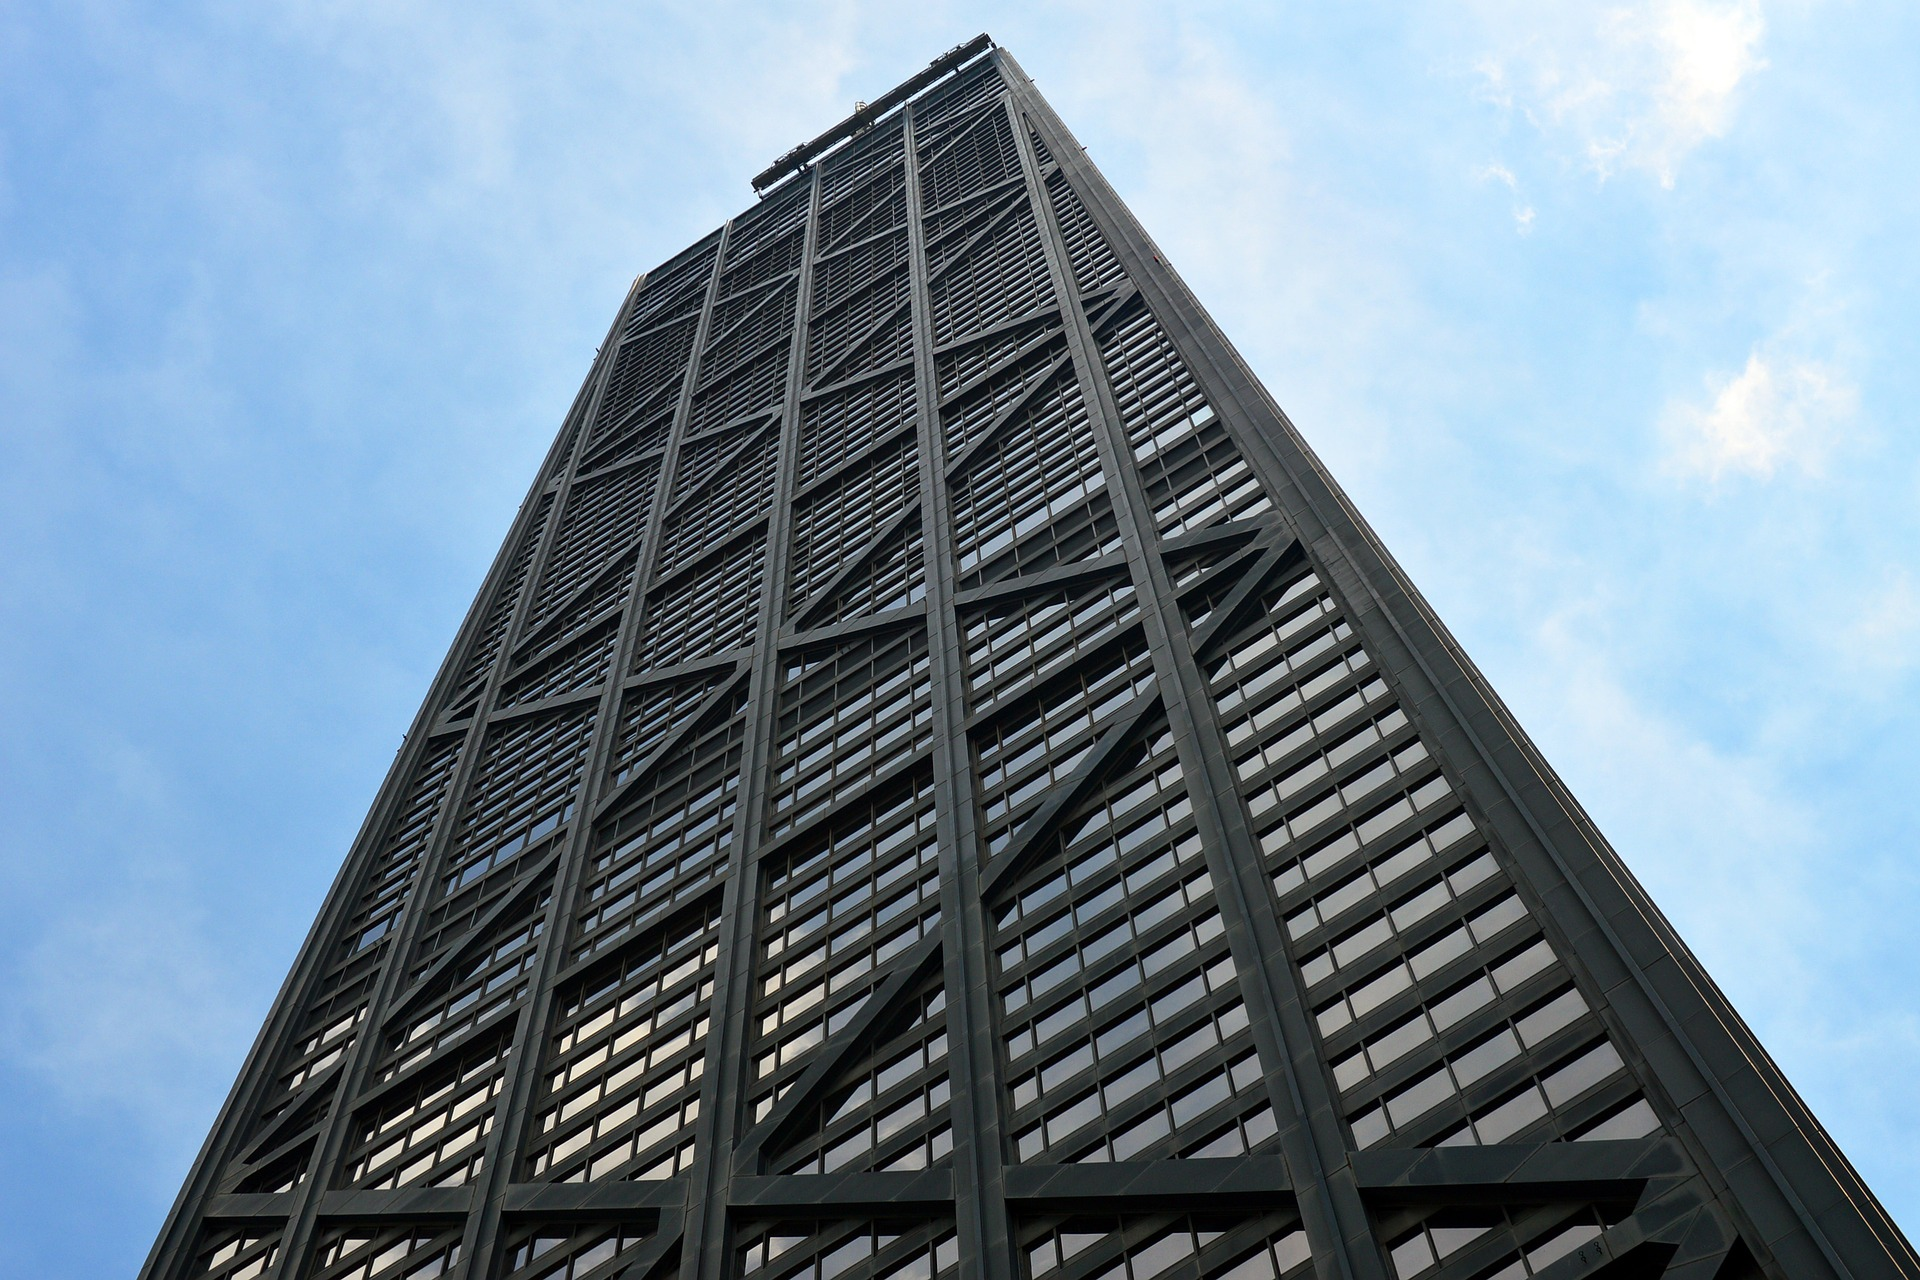 Hancock Center in Chicago